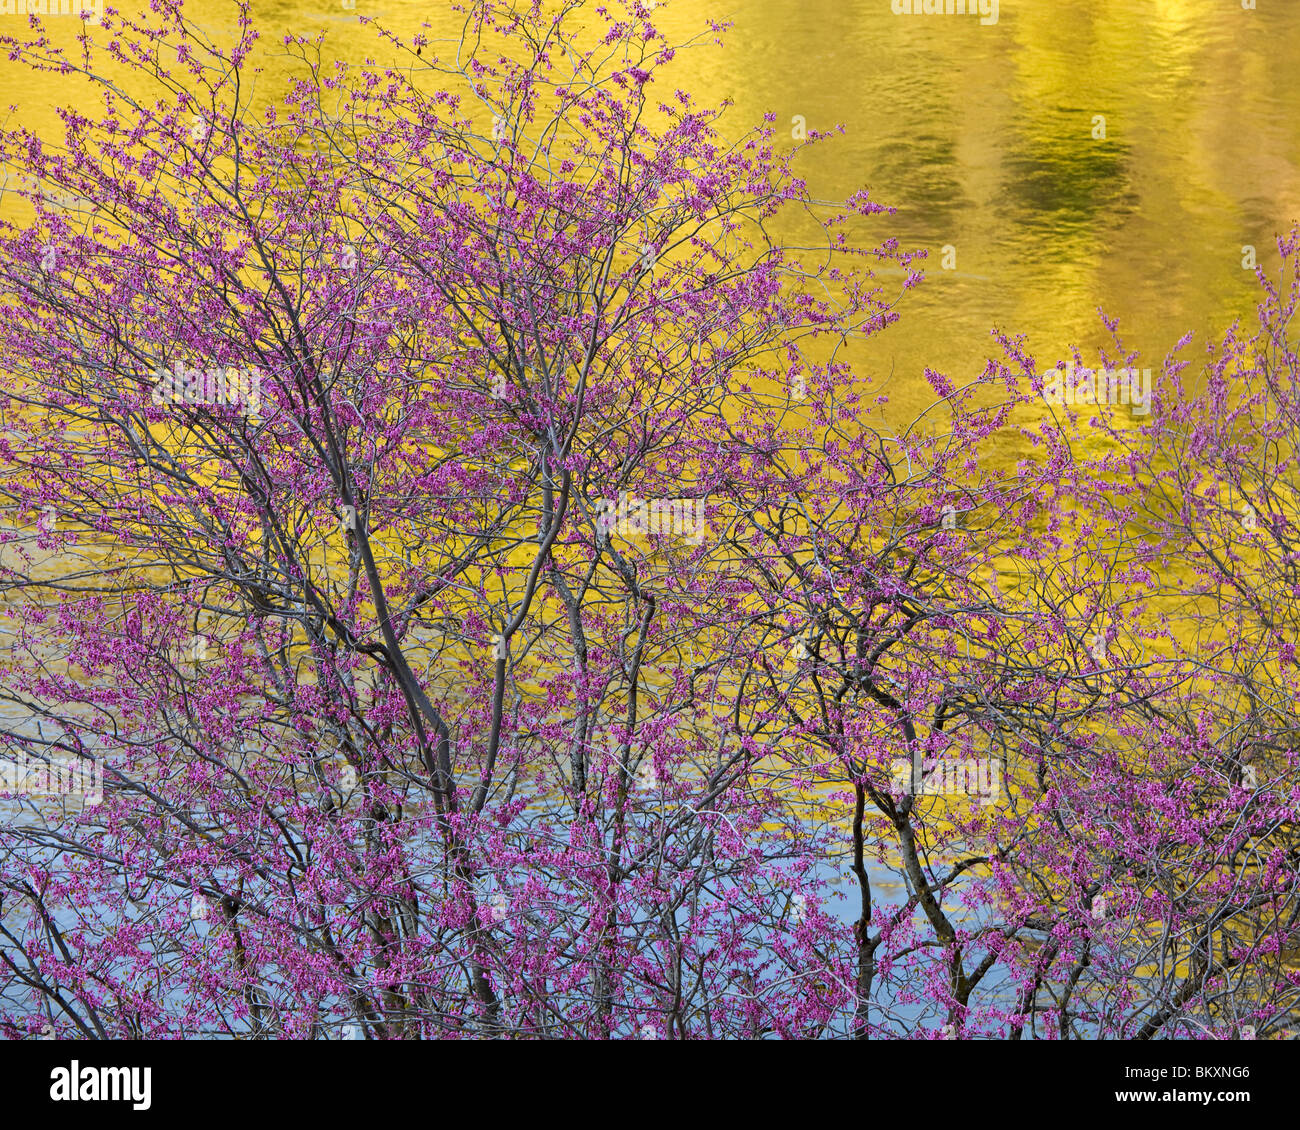 Sierra National Forest, CA: Flowering redbud (Cercis canadensis) against reflections of the Merced River - Stock Image